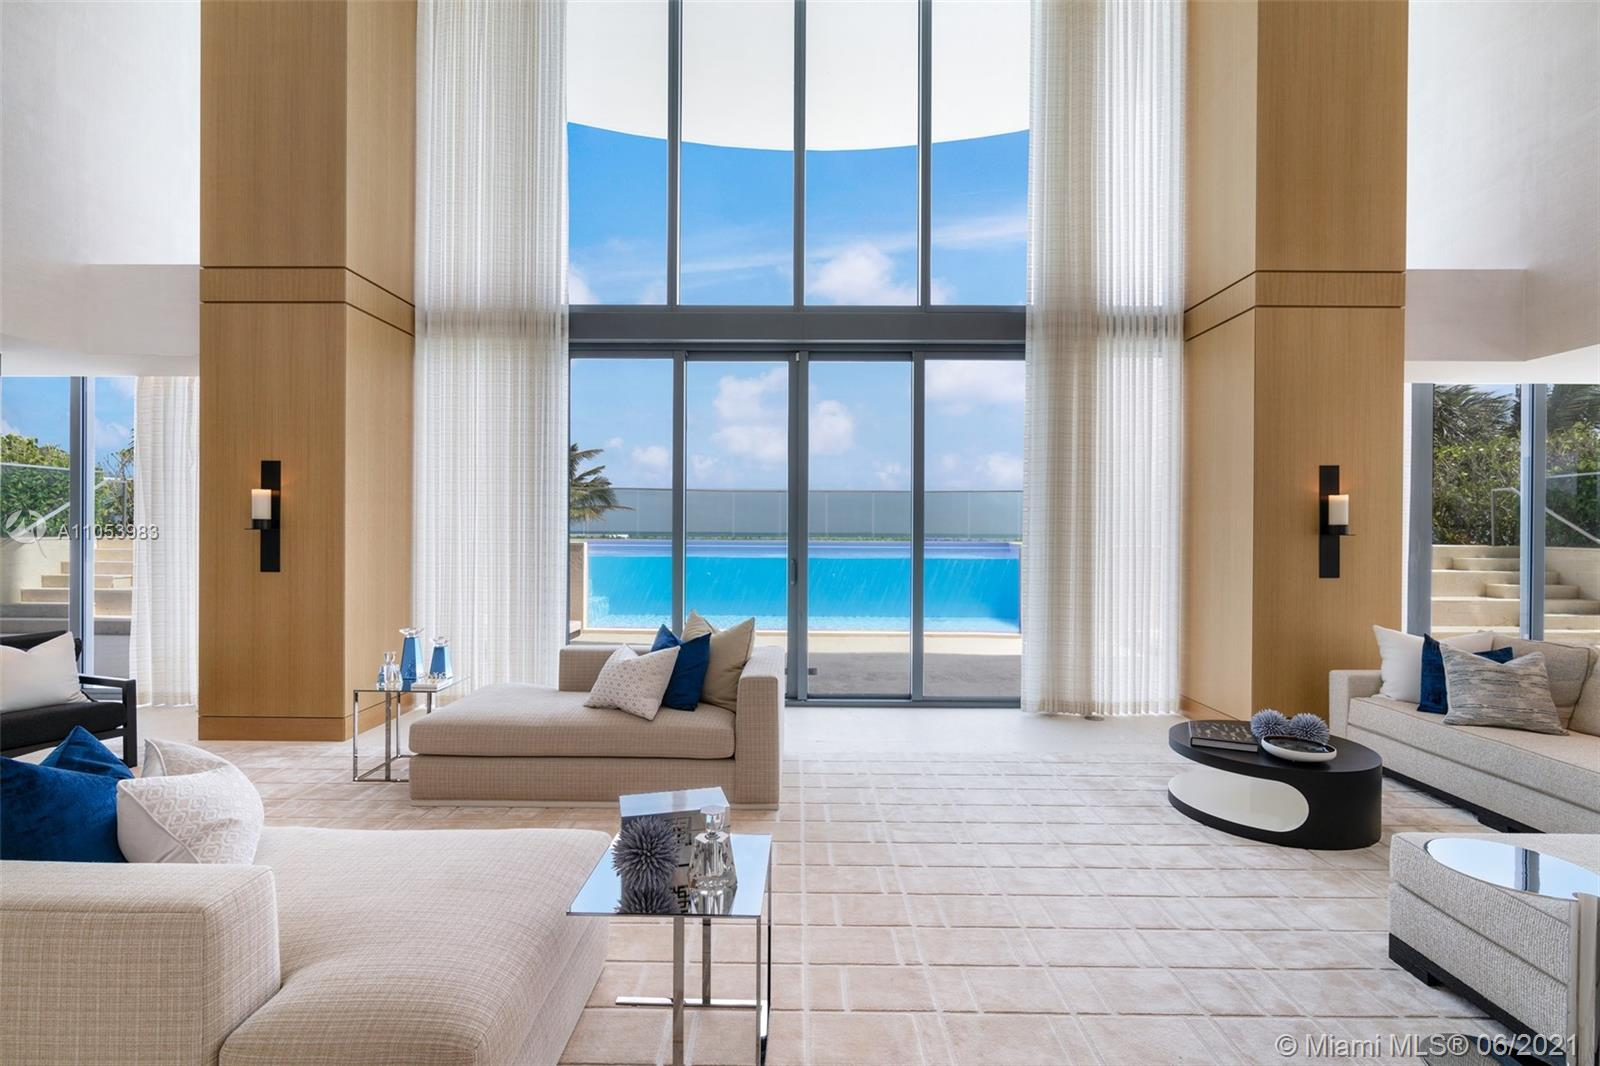 The Beach House at Regalia Sunny Isles is an oceanfront residence at the scale of a private home, with all the conveniences of an ultra-luxury condominium. The Beach House accommodates a variety of living and entertainment areas, from the double-height great room that opens onto the glass-walled oceanfront pool and hot tub, to the adjoining summer kitchen, the quartz and bronze cocktail bar, private spa with hammam steam room, chef's kitchen with Wolf & Subzero appliances, and game room. The private areas of the home are just as special, with a guest living room, study, and massive master bathroom lined in floor-to-ceiling white onyx. Regalia offers a concierge, full-service spa, beach & pool, a private wine vault, business center, children's room, library, yoga studio & fitness center.